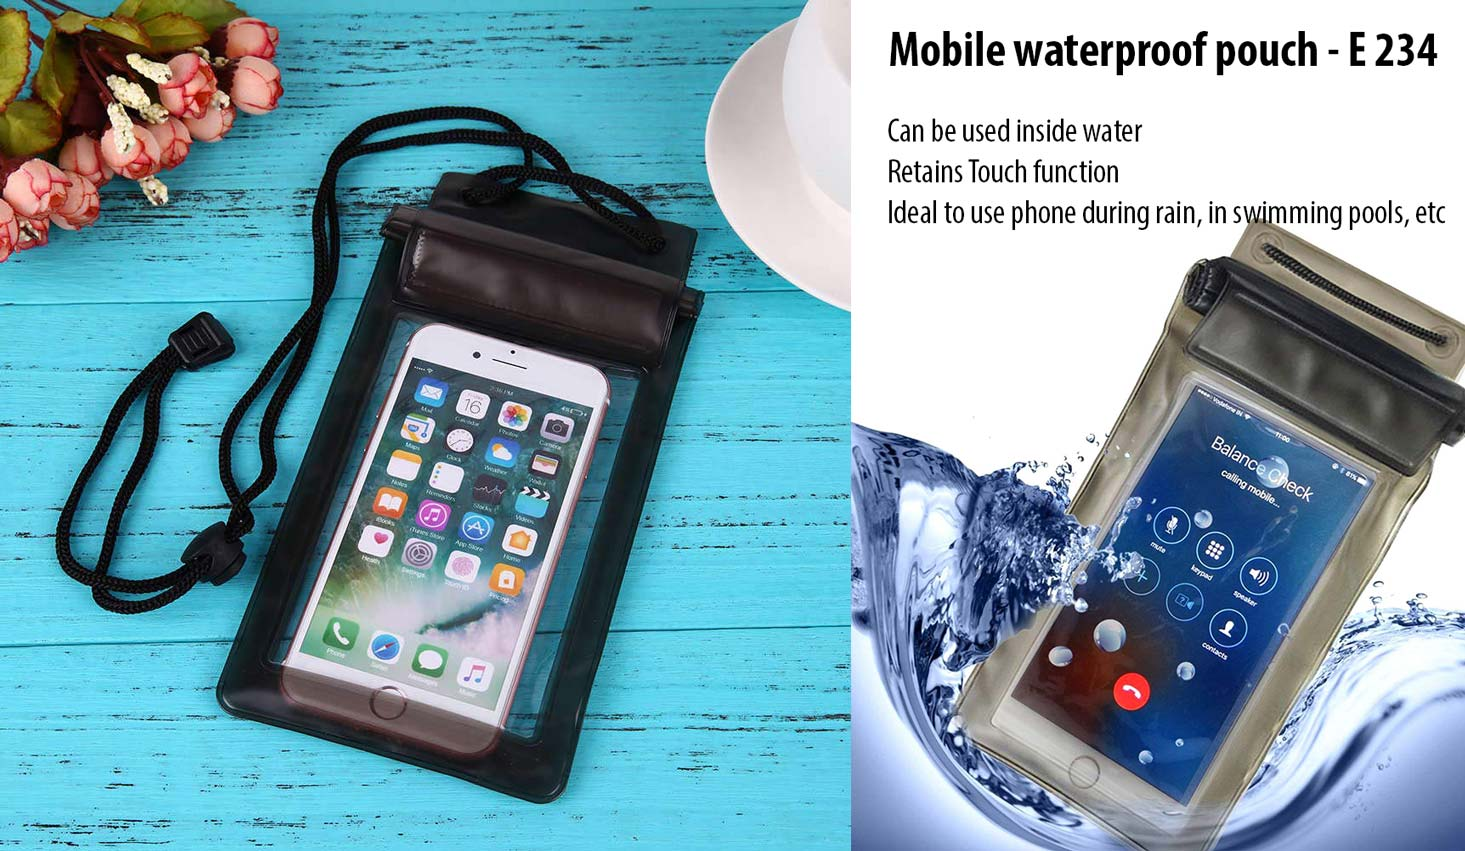 E234 - Mobile waterproof pouch | Can be used inside water